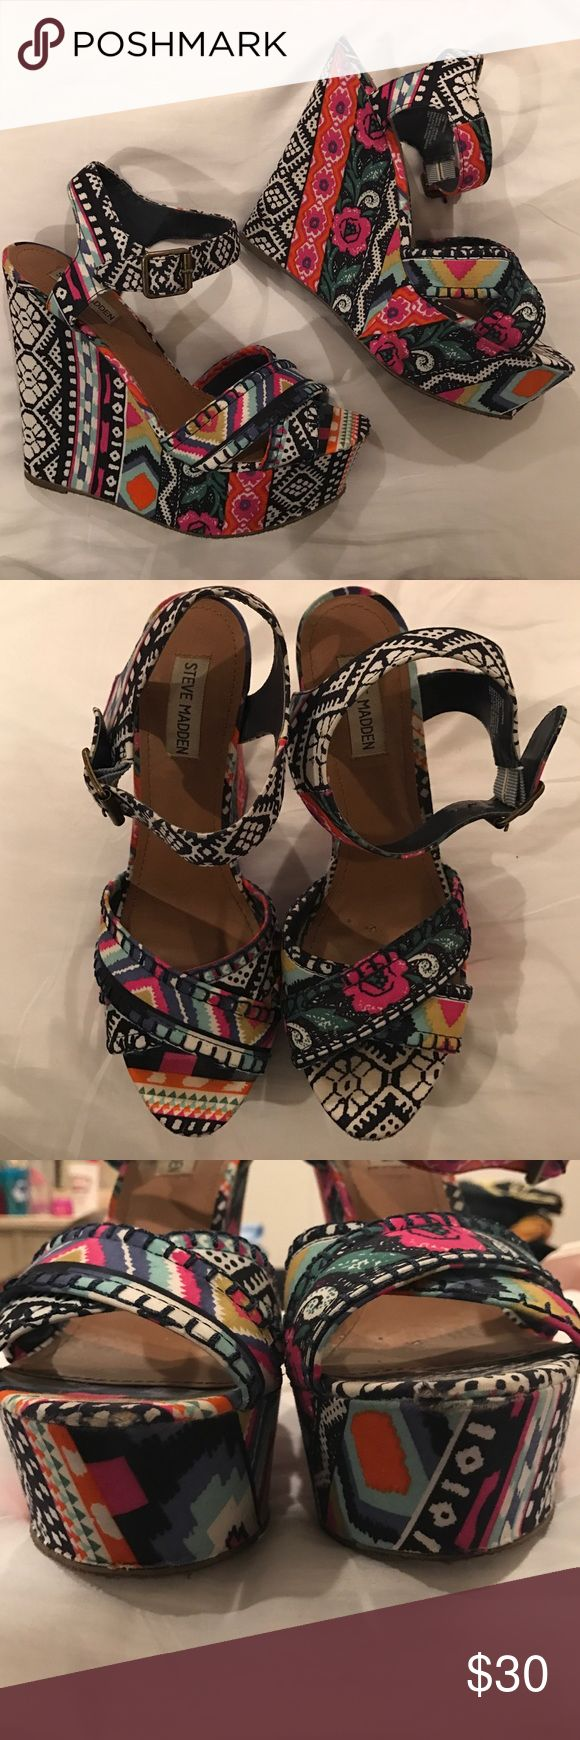 "Colorful Patterned ""Winonna"" Steve Madden wedges Super cute ""Winonna"" wedges perfect for brightening up any outfit. Size 10 Steve Madden Shoes Wedges"